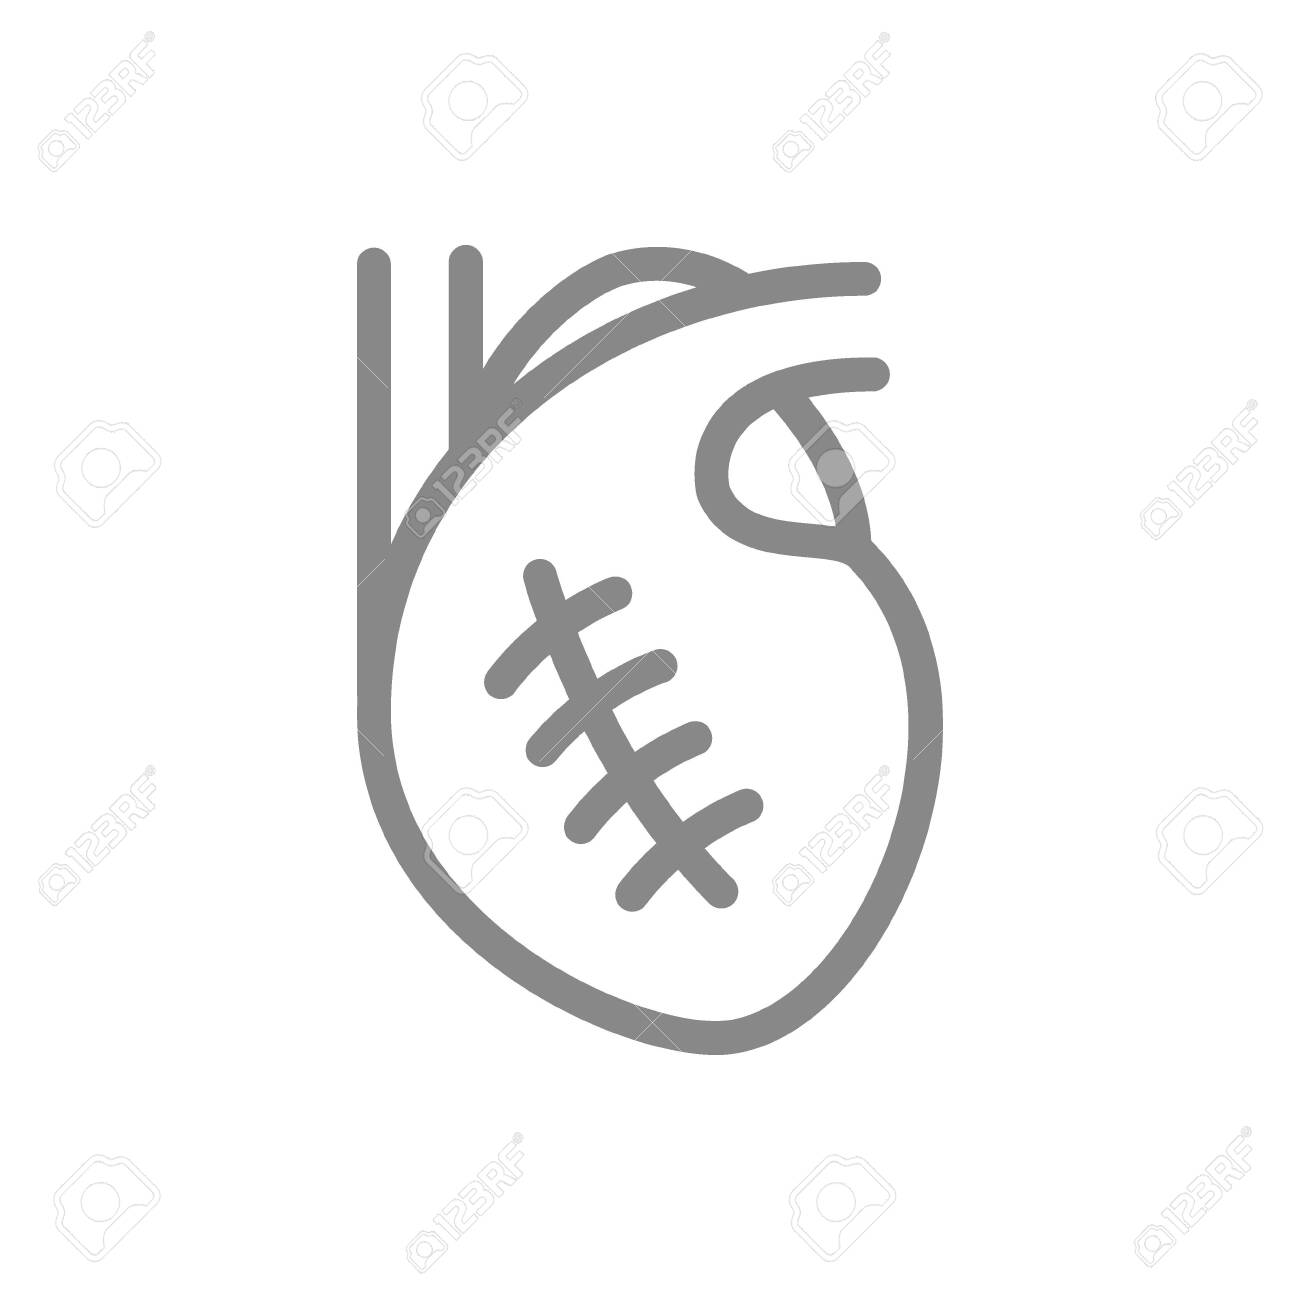 Scar On Heart Line Icon Myocardial Infarction Cardiac Surgery Royalty Free Cliparts Vectors And Stock Illustration Image 151517430